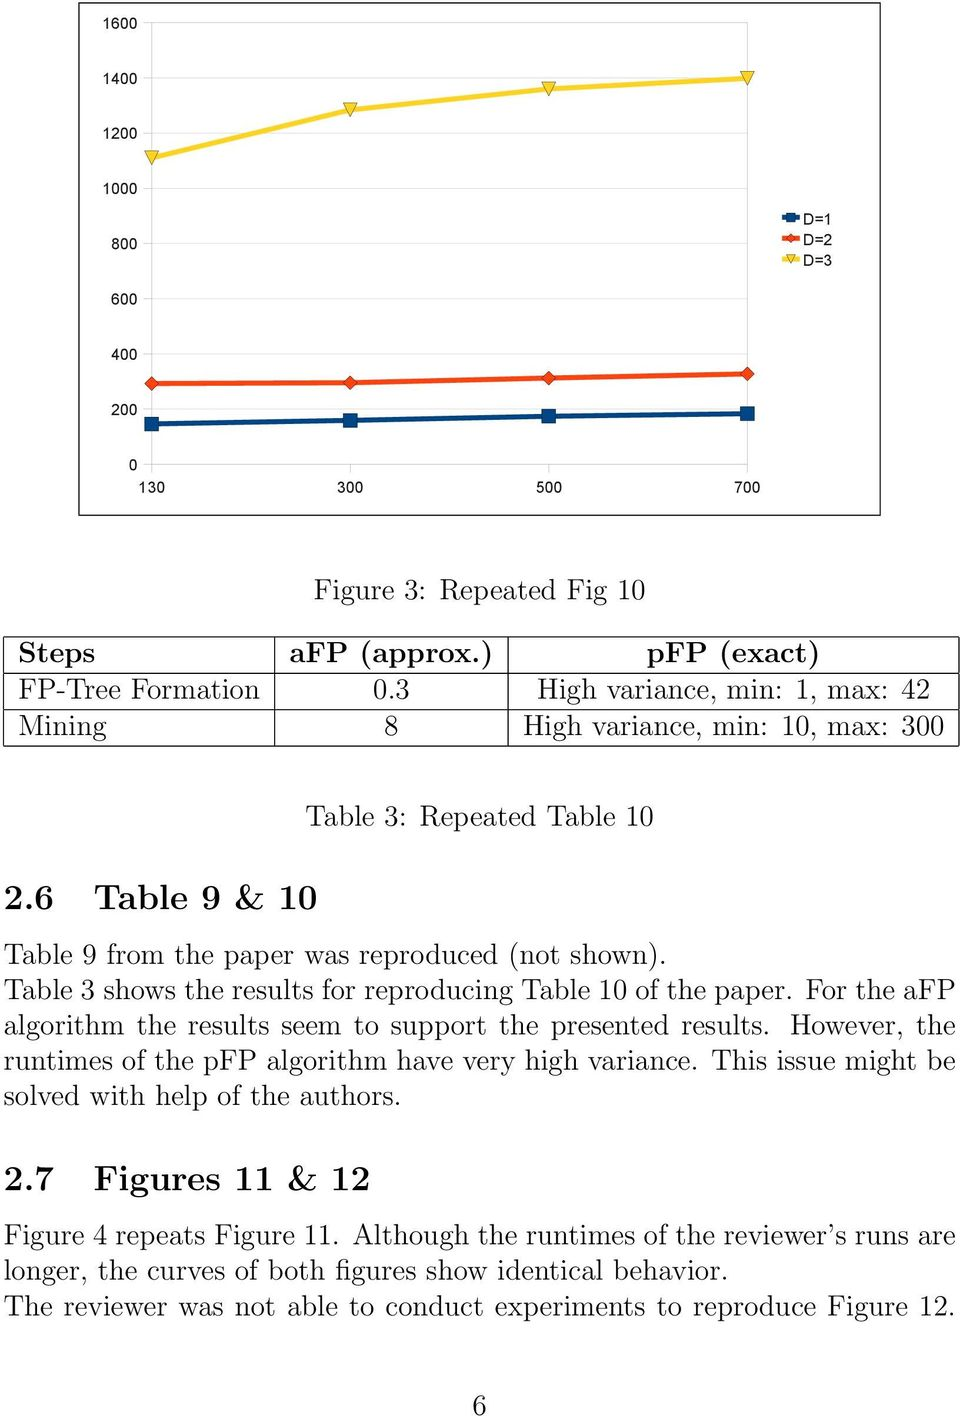 Table 3 shows the results for reproducing Table 1 of the paper. For the afp algorithm the results seem to support the presented results.